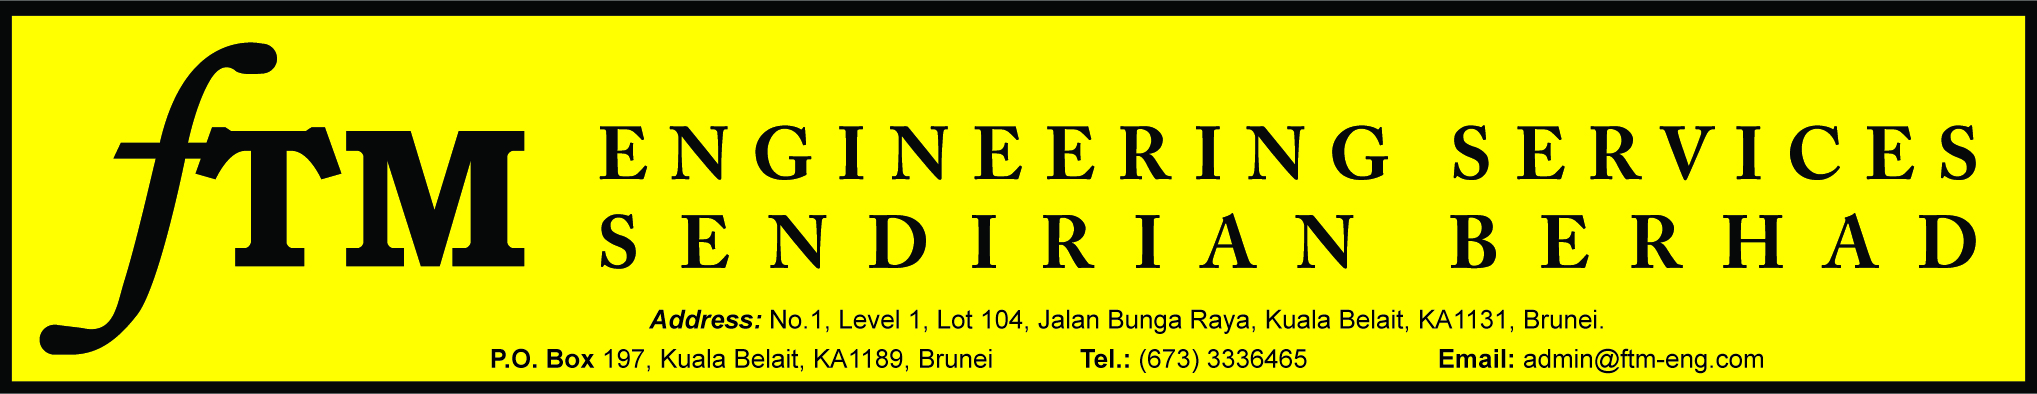 FTM ENGINEERING SERVICES SDN BHD